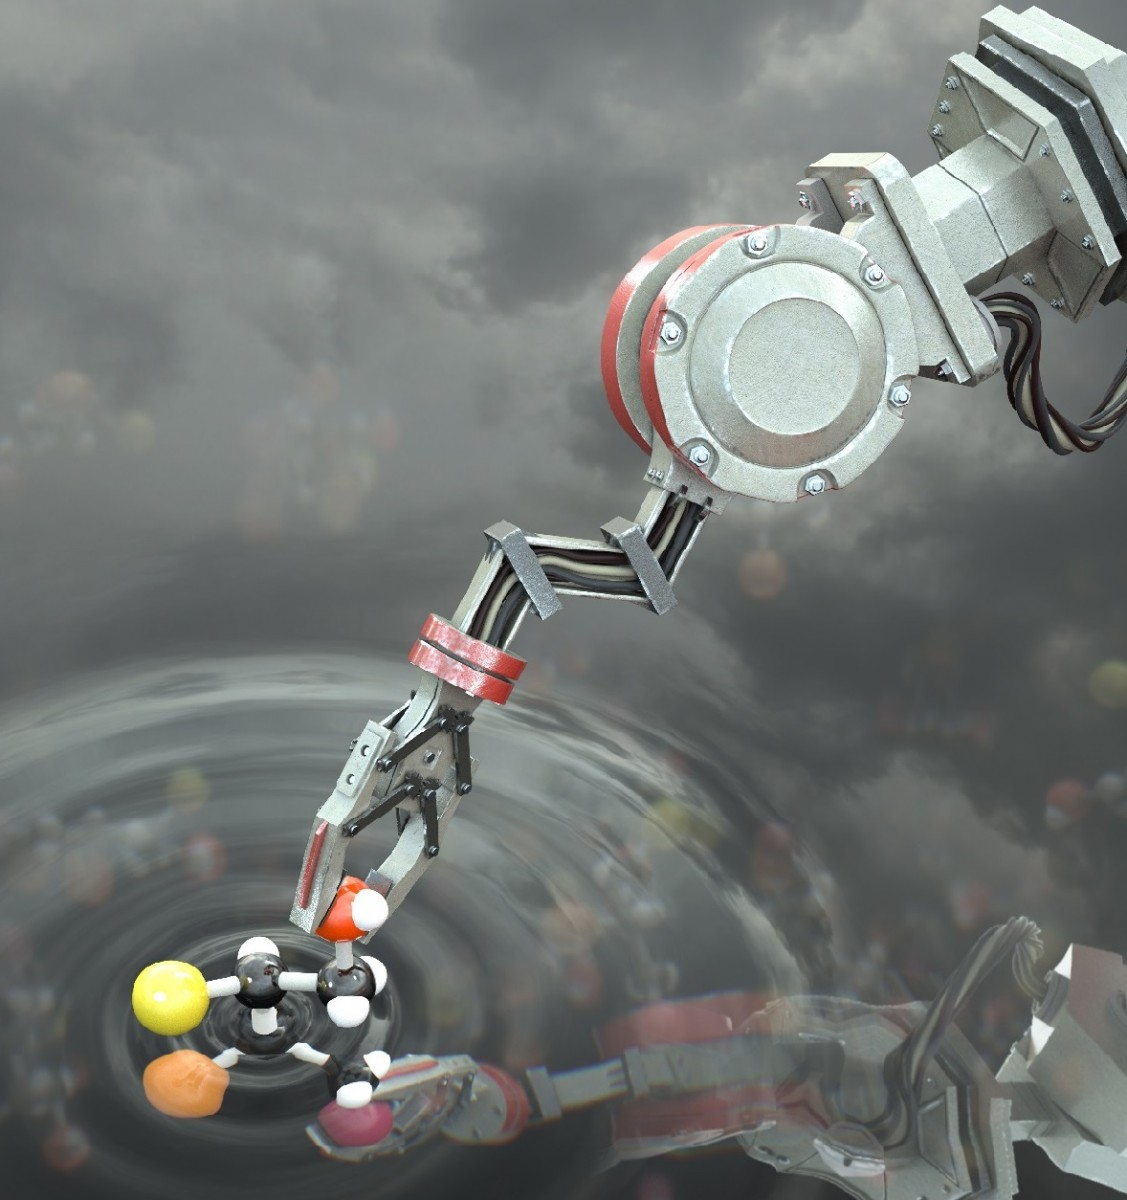 Artist's impression of the molecular robot manipulating a molecule